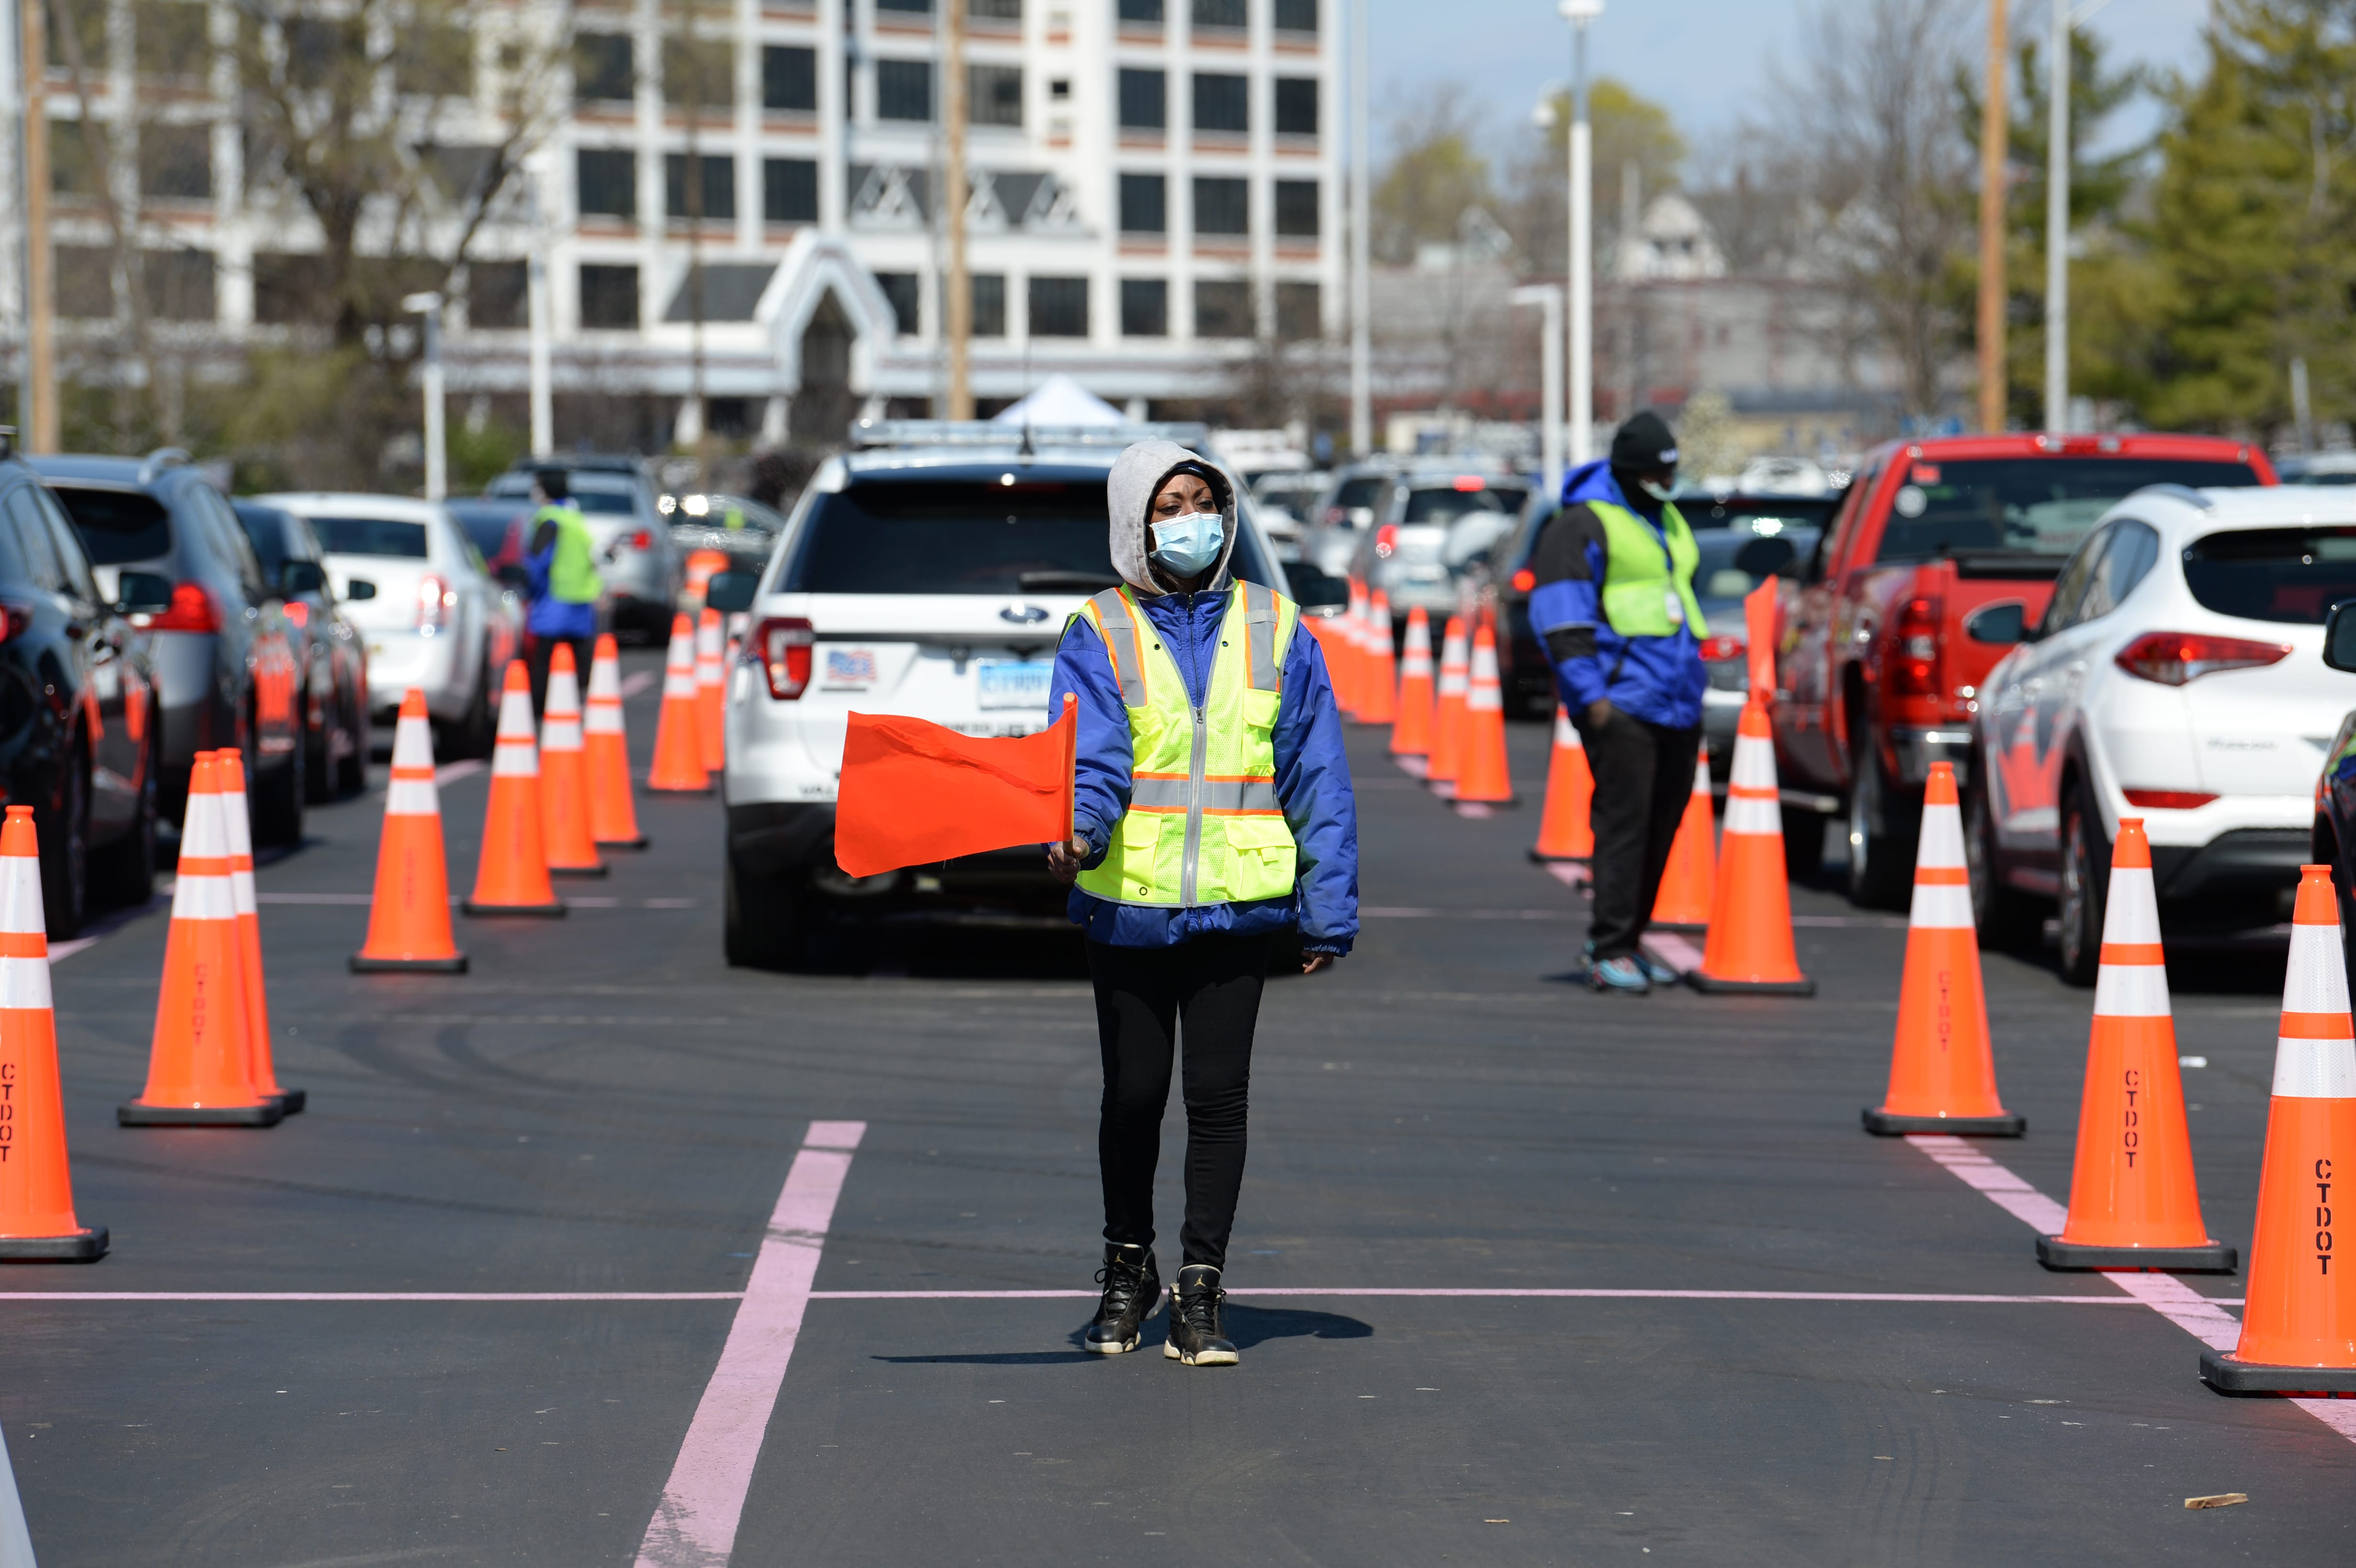 Connecticut S Covid 19 Death Toll Passes 1 000 First Rapid Testing Center Opens In New Haven